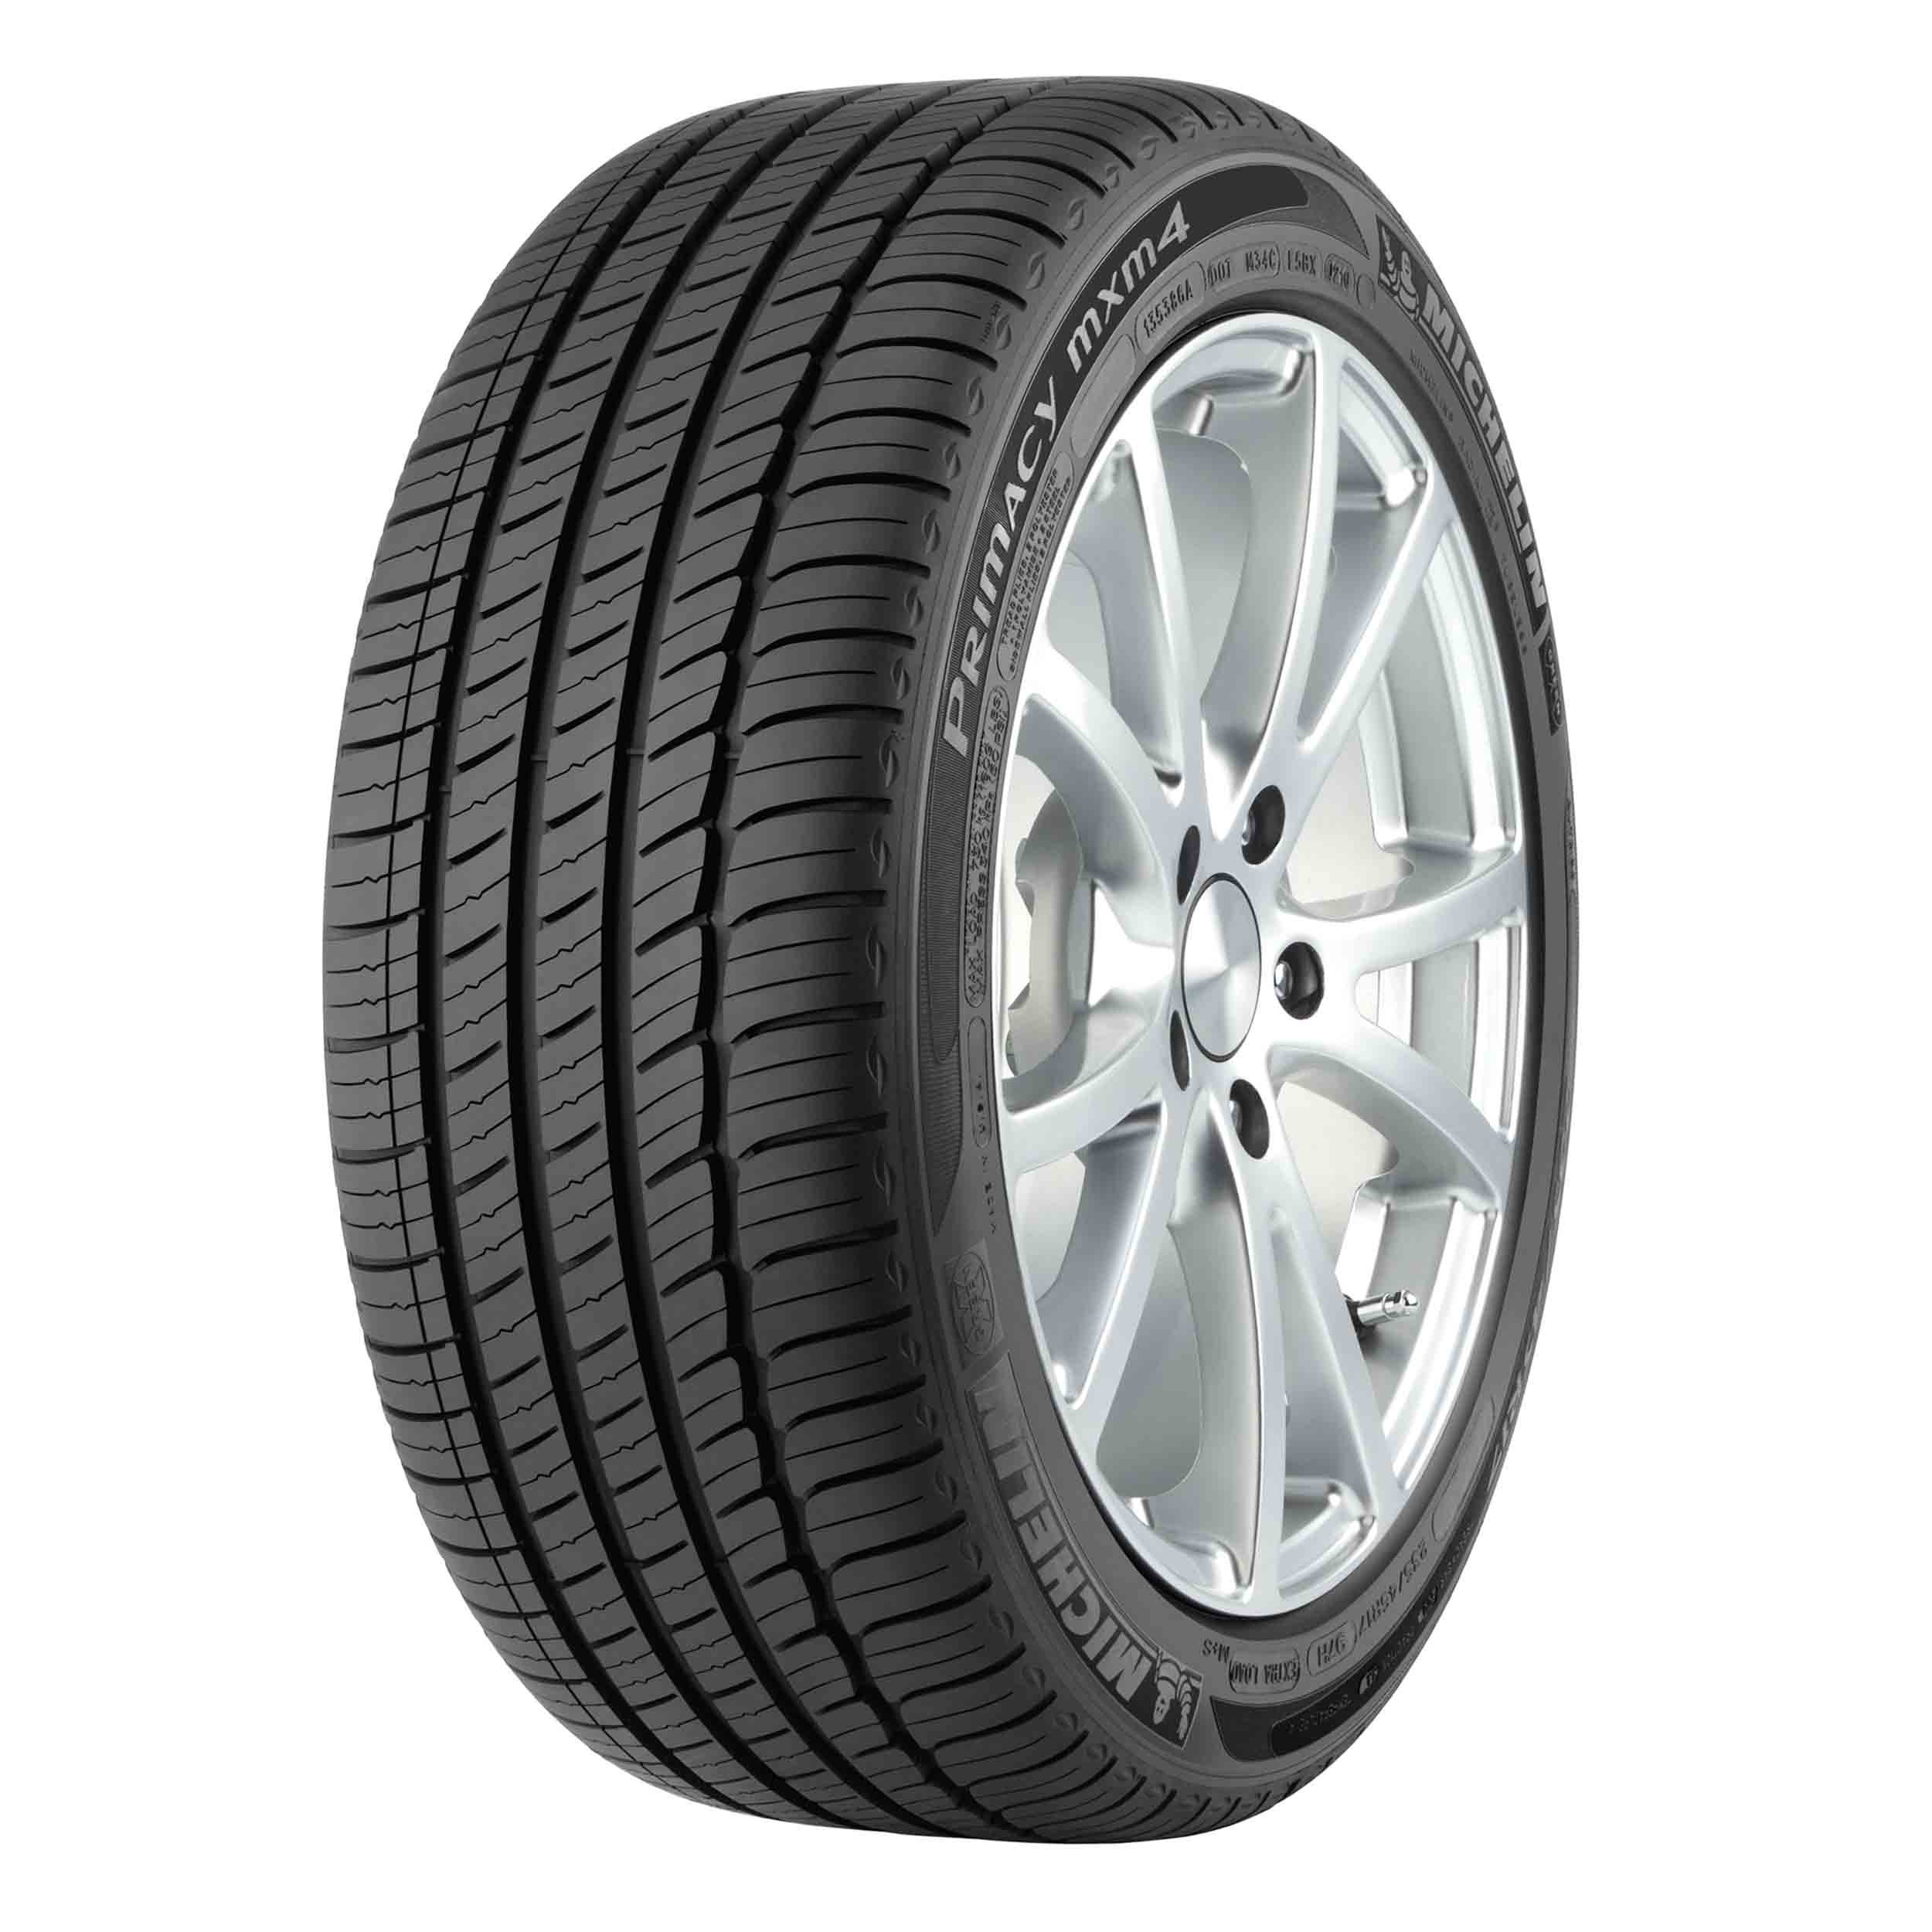 Michelin Primacy MXM4 Touring Radial Tire - P225/45R18 91V by Michelin